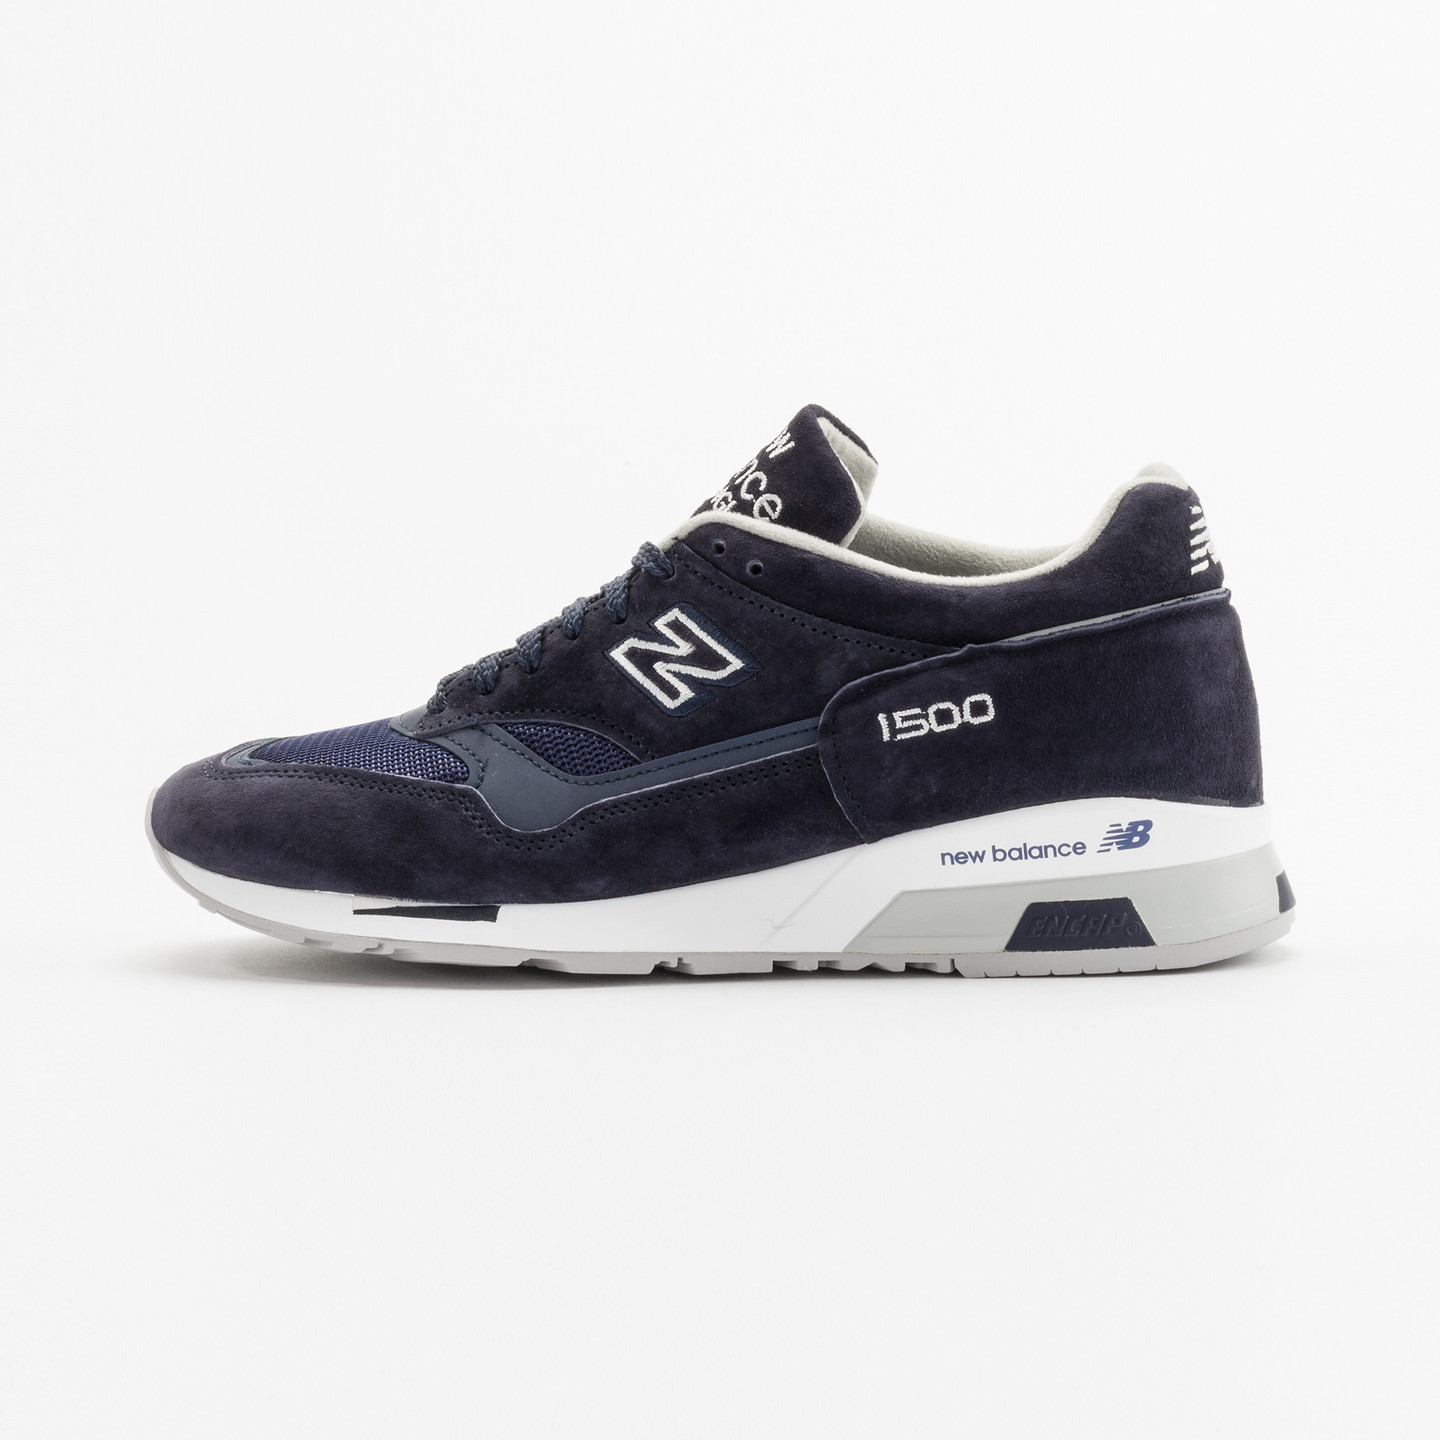 New Balance M1500 JDA - Made in England Dark Navy / White M1500JDA